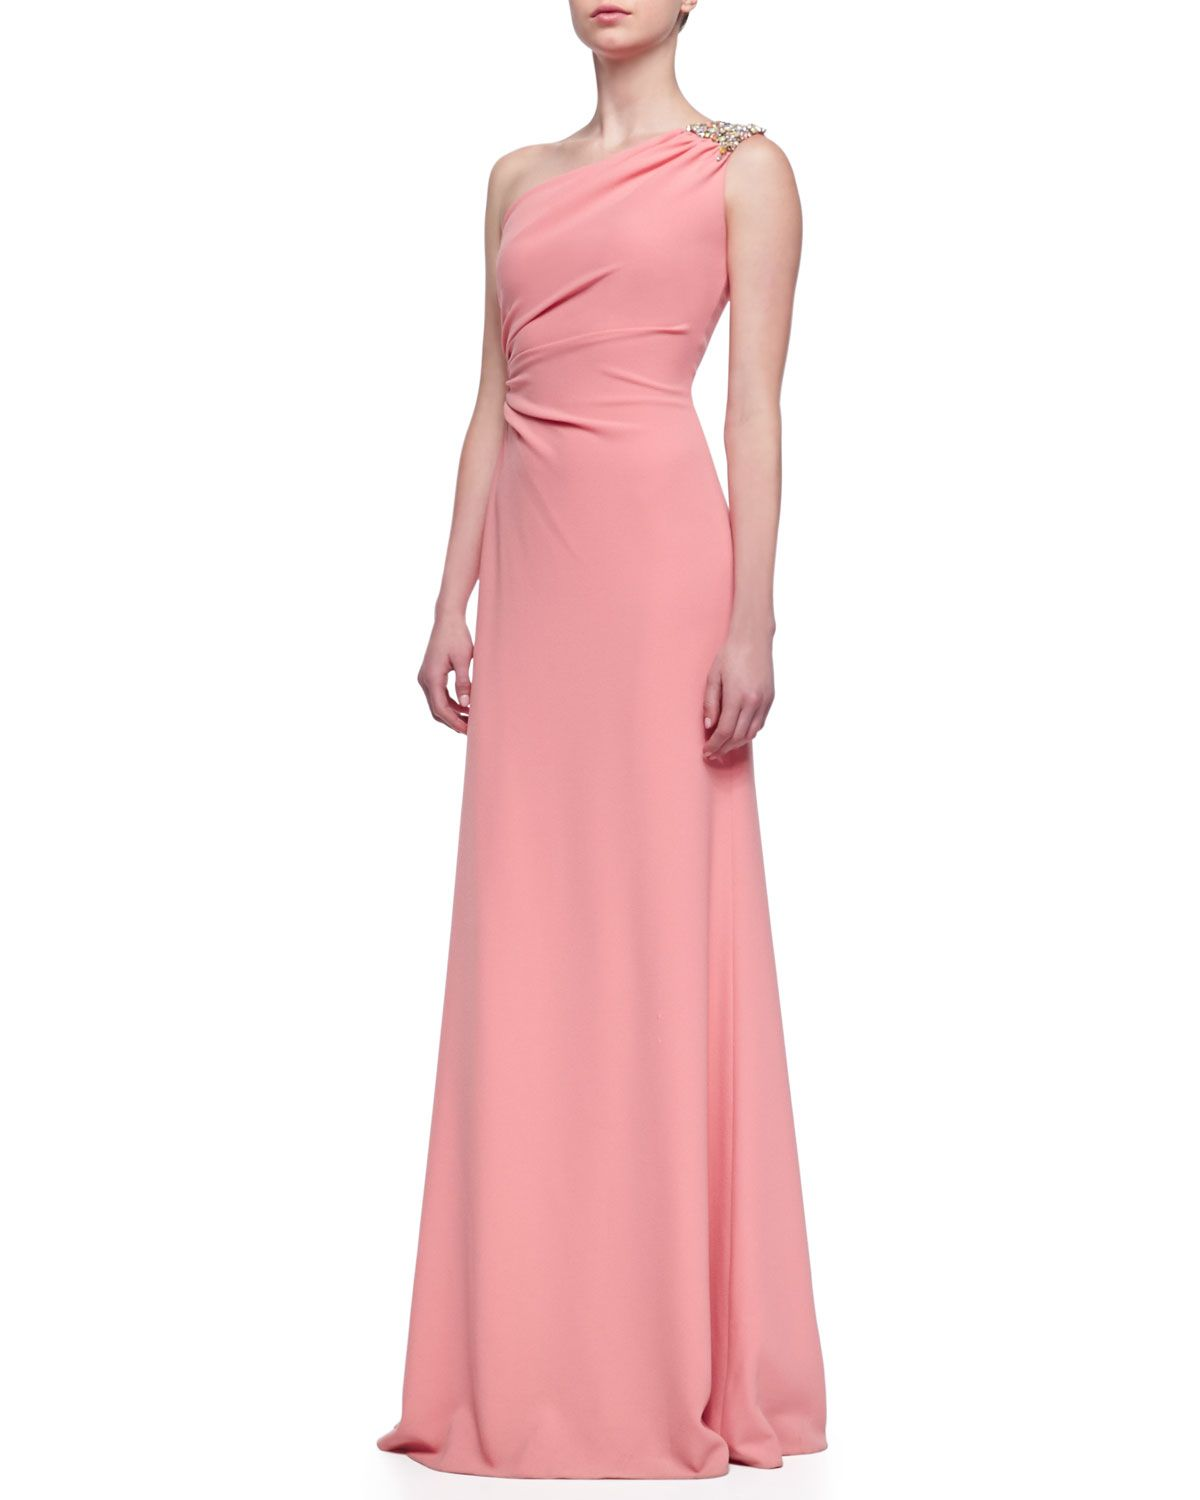 David Meister Beaded One-Shoulder Gown, Sorbet | Girly/Womanly-Stuff ...